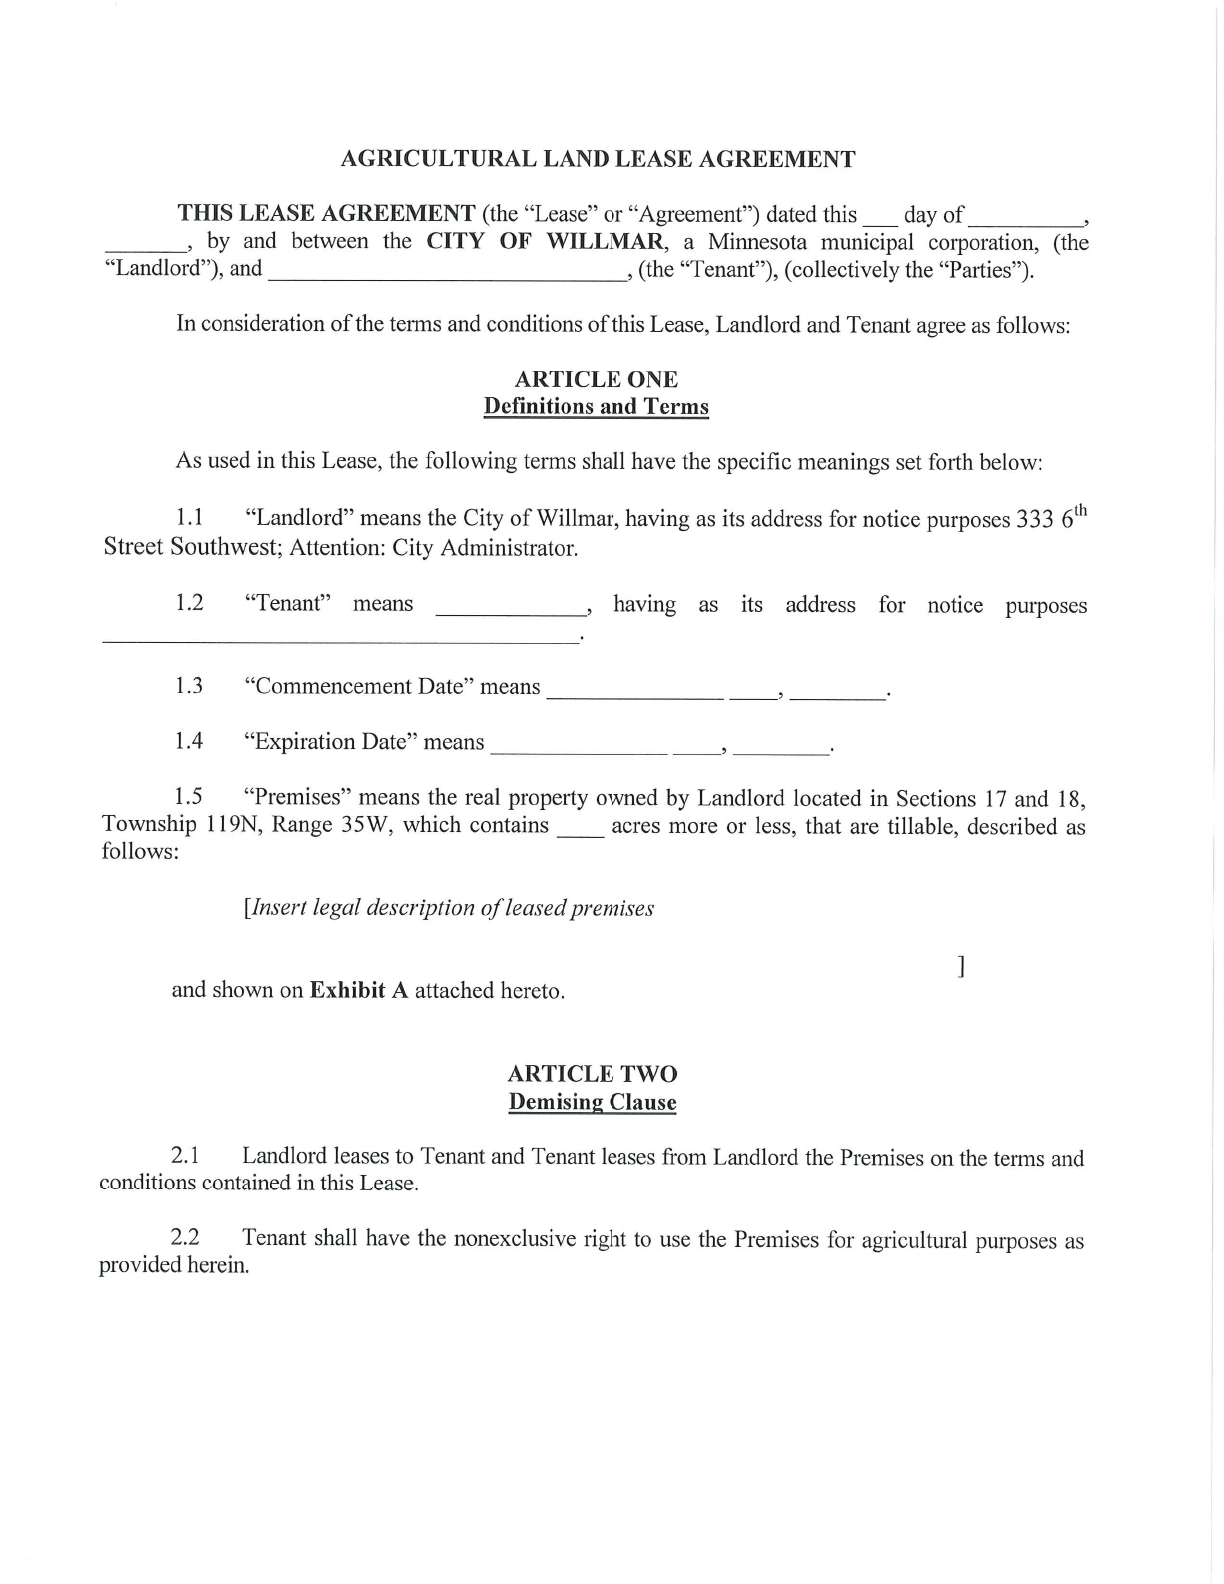 Download Agricultural Land Lease Agreement For Free Tidytemplates